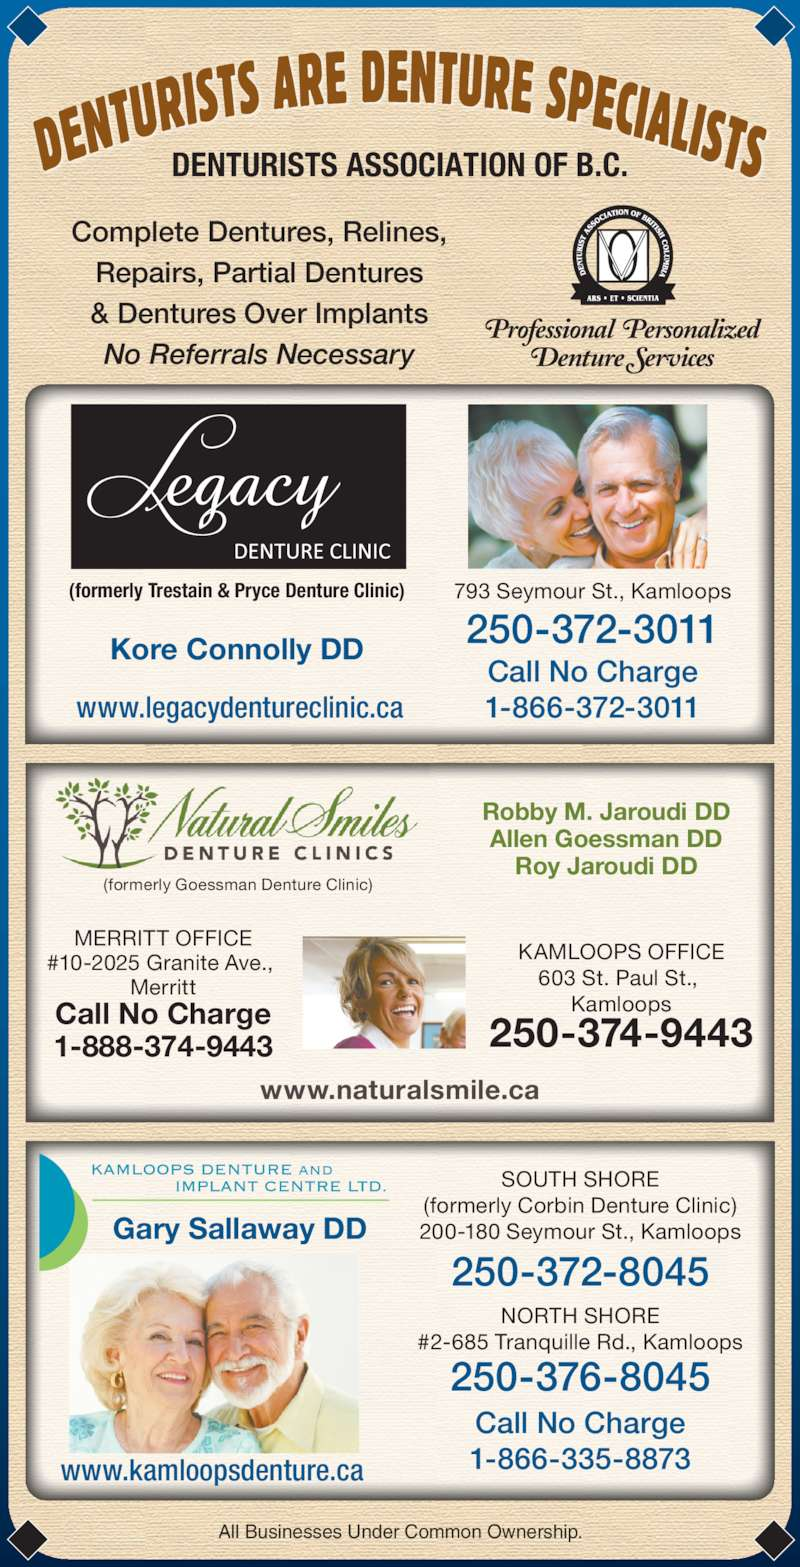 Legacy Denture Clinic (250-372-3011) - Display Ad - Complete Dentures, Relines, Repairs, Partial Dentures & Dentures Over Implants No Referrals Necessary All Businesses Under Common Ownership. (formerly Trestain & Pryce Denture Clinic) Kore Connolly DD Robby M. Jaroudi DD Allen Goessman DD Roy Jaroudi DD www.naturalsmile.ca (formerly Goessman Denture Clinic) 250-374-9443 KAMLOOPS OFFICE 603 St. Paul St.,  Kamloops MERRITT OFFICE #10-2025 Granite Ave.,  Denture Services Merritt Call No Charge 1-888-374-9443 793 Seymour St., Kamloops 250-372-3011 Call No Charge 1-866-372-3011www.legacydentureclinic.ca www.kamloopsdenture.ca 250-372-8045 250-376-8045 Call No Charge 1-866-335-8873 SOUTH SHORE (formerly Corbin Denture Clinic) 200-180 Seymour St., Kamloops NORTH SHORE #2-685 Tranquille Rd., Kamloops Gary Sallaway DD DENTURISTS ASSOCIATION OF B.C. Professional  Personalized